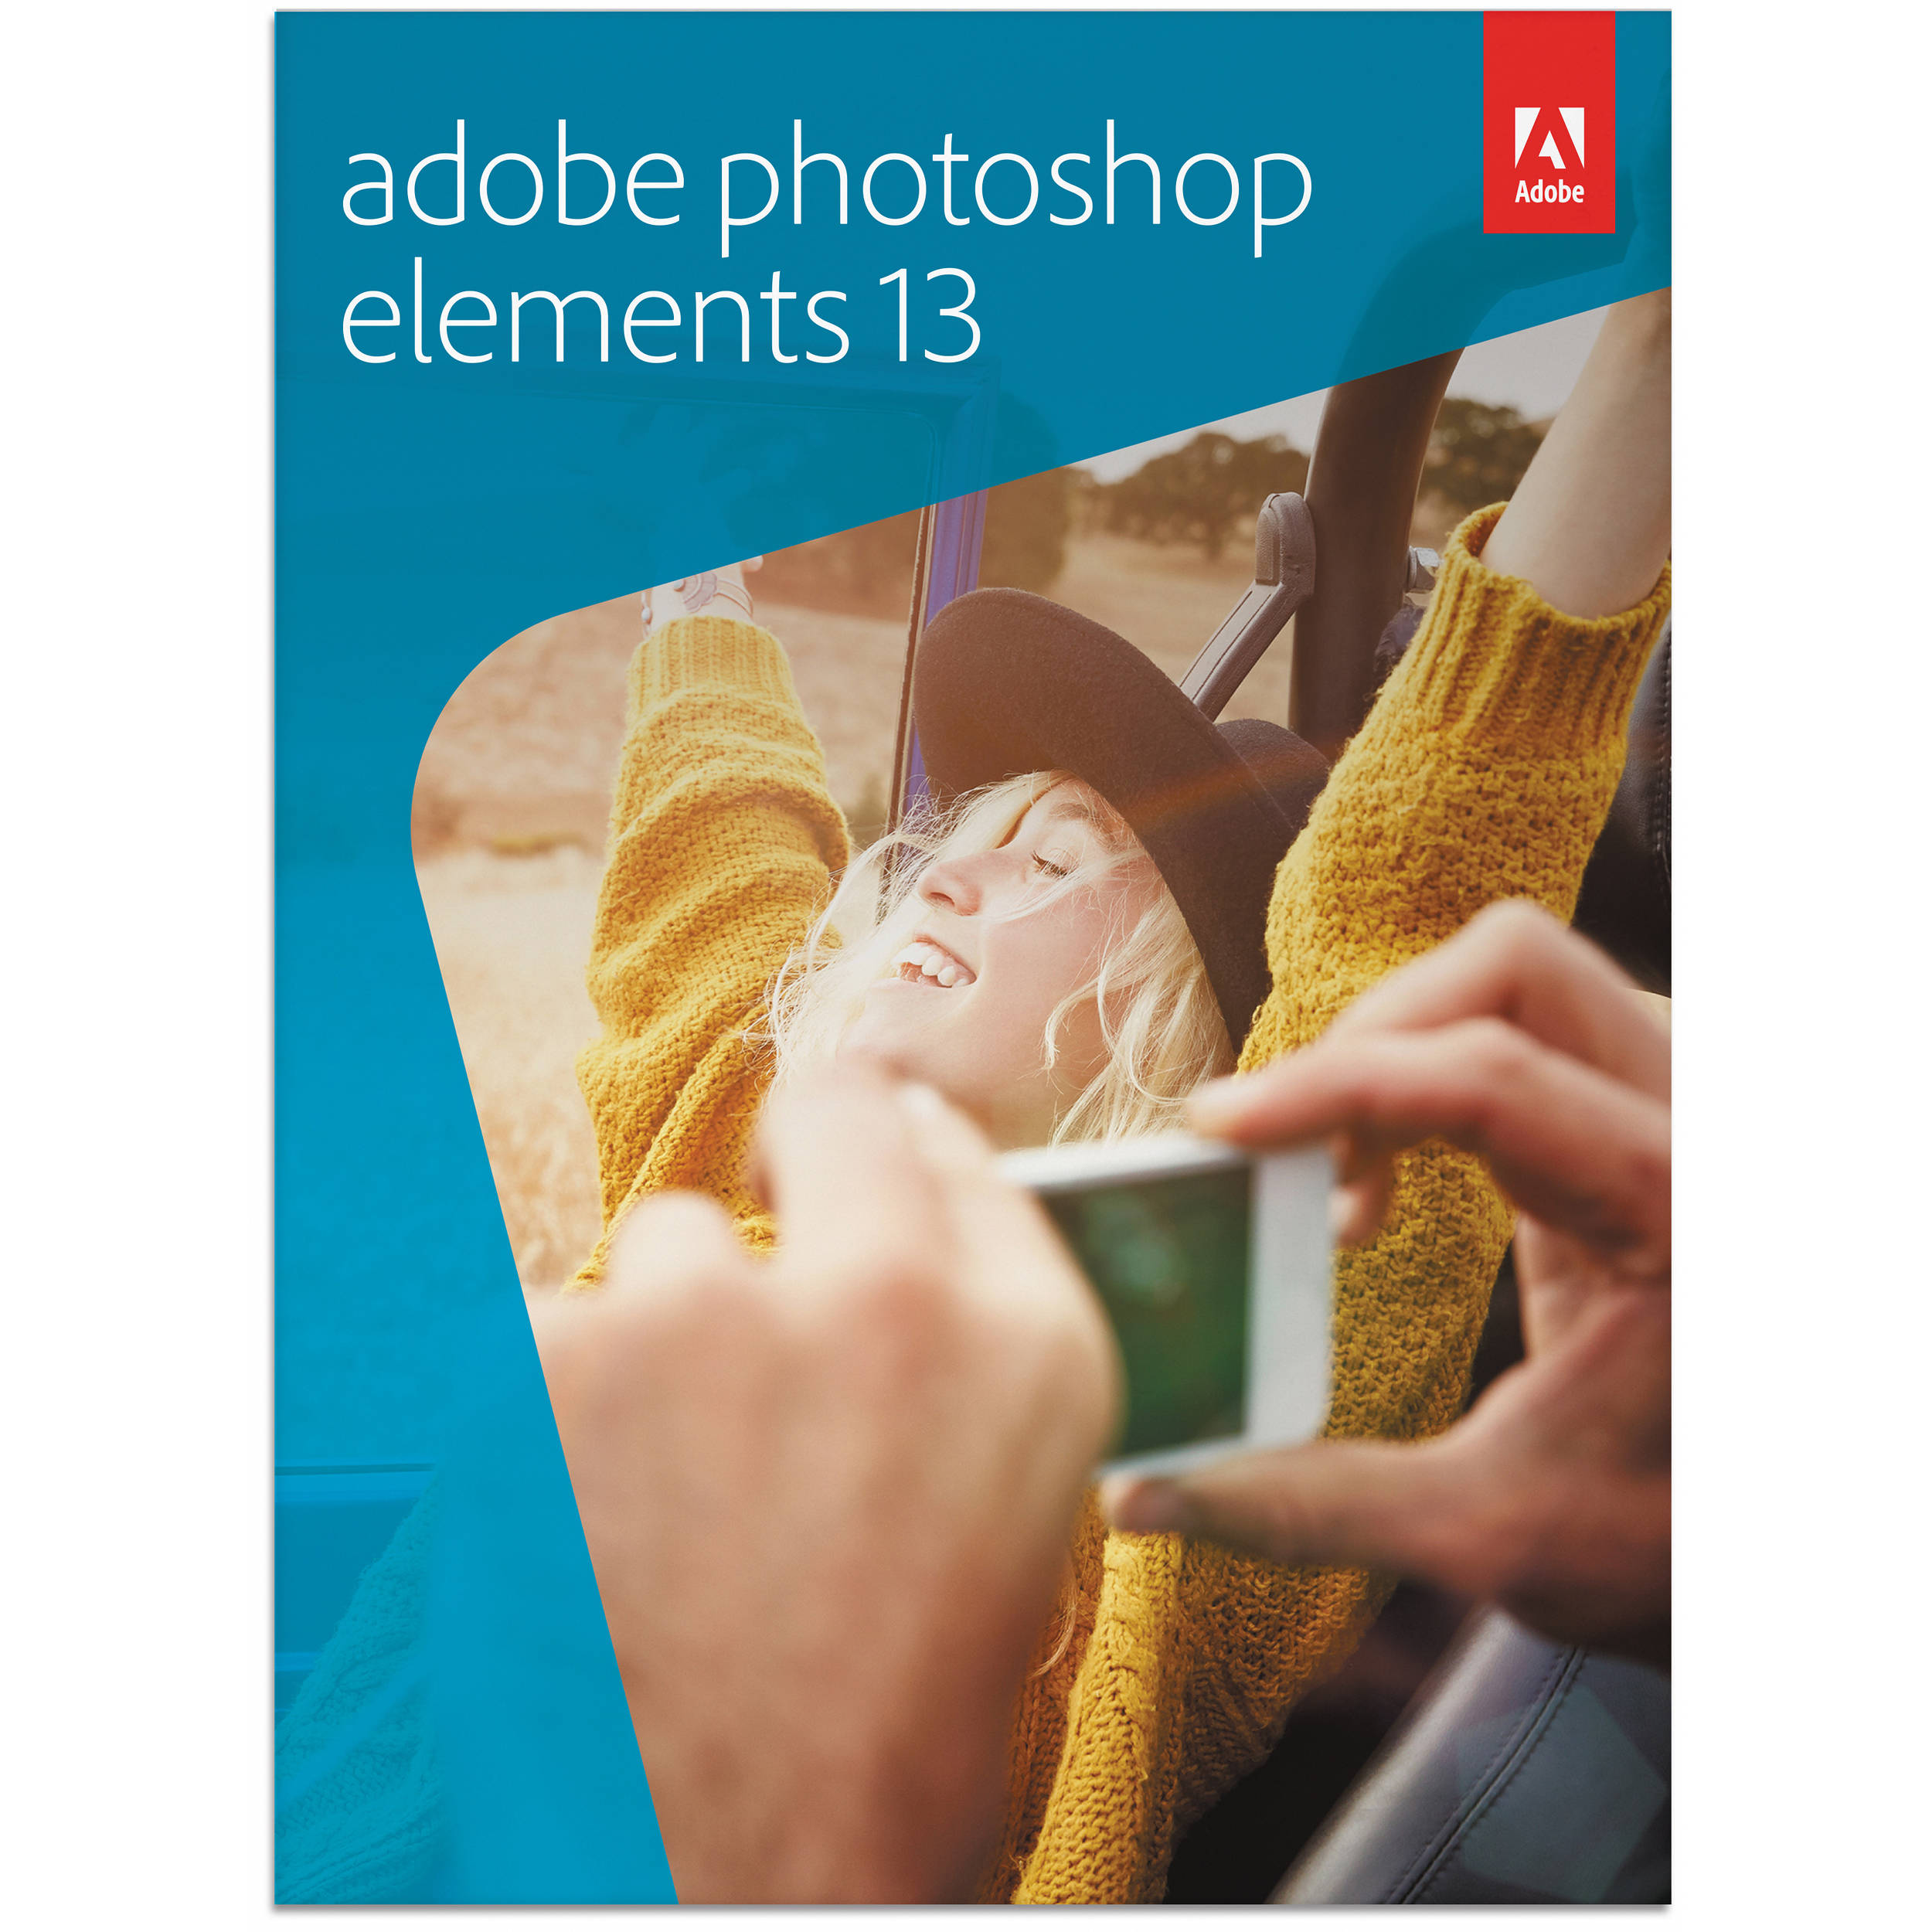 Adobe photoshop elements 13 for mac and windows dvd 65234455 adobe photoshop elements 13 for mac and windows dvd baditri Images